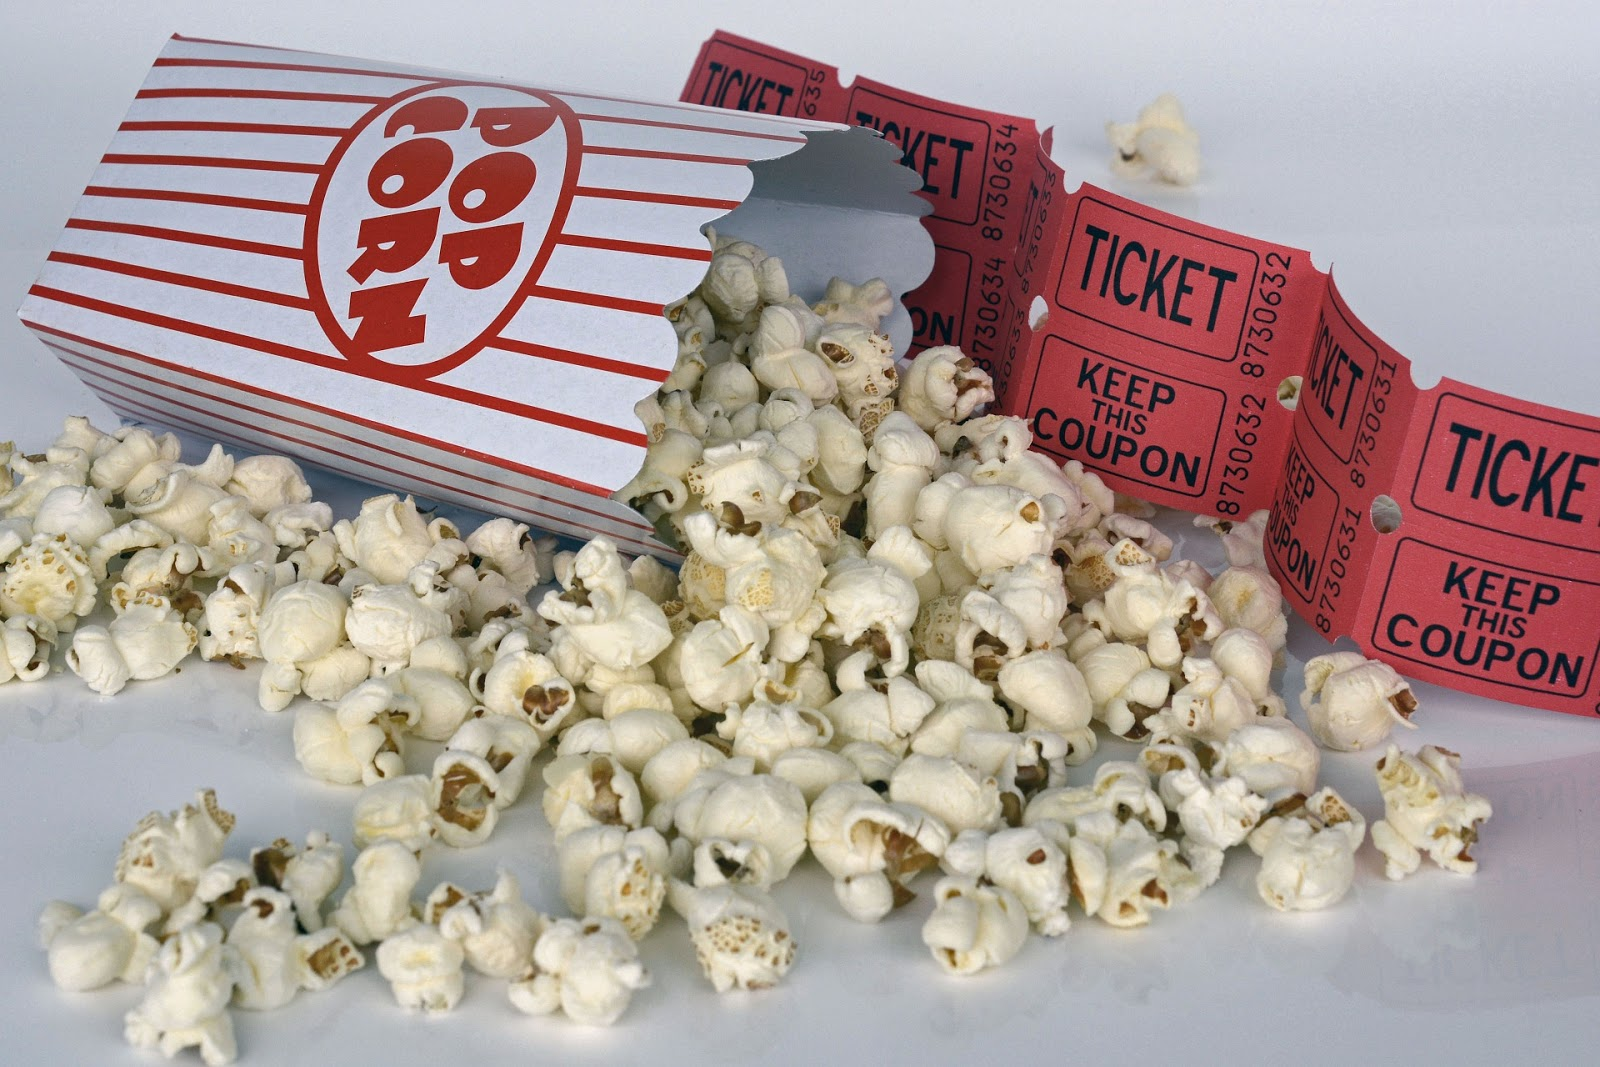 popcorn spilling out of popcorn container with red movie tickets for blog post about the movie Midway